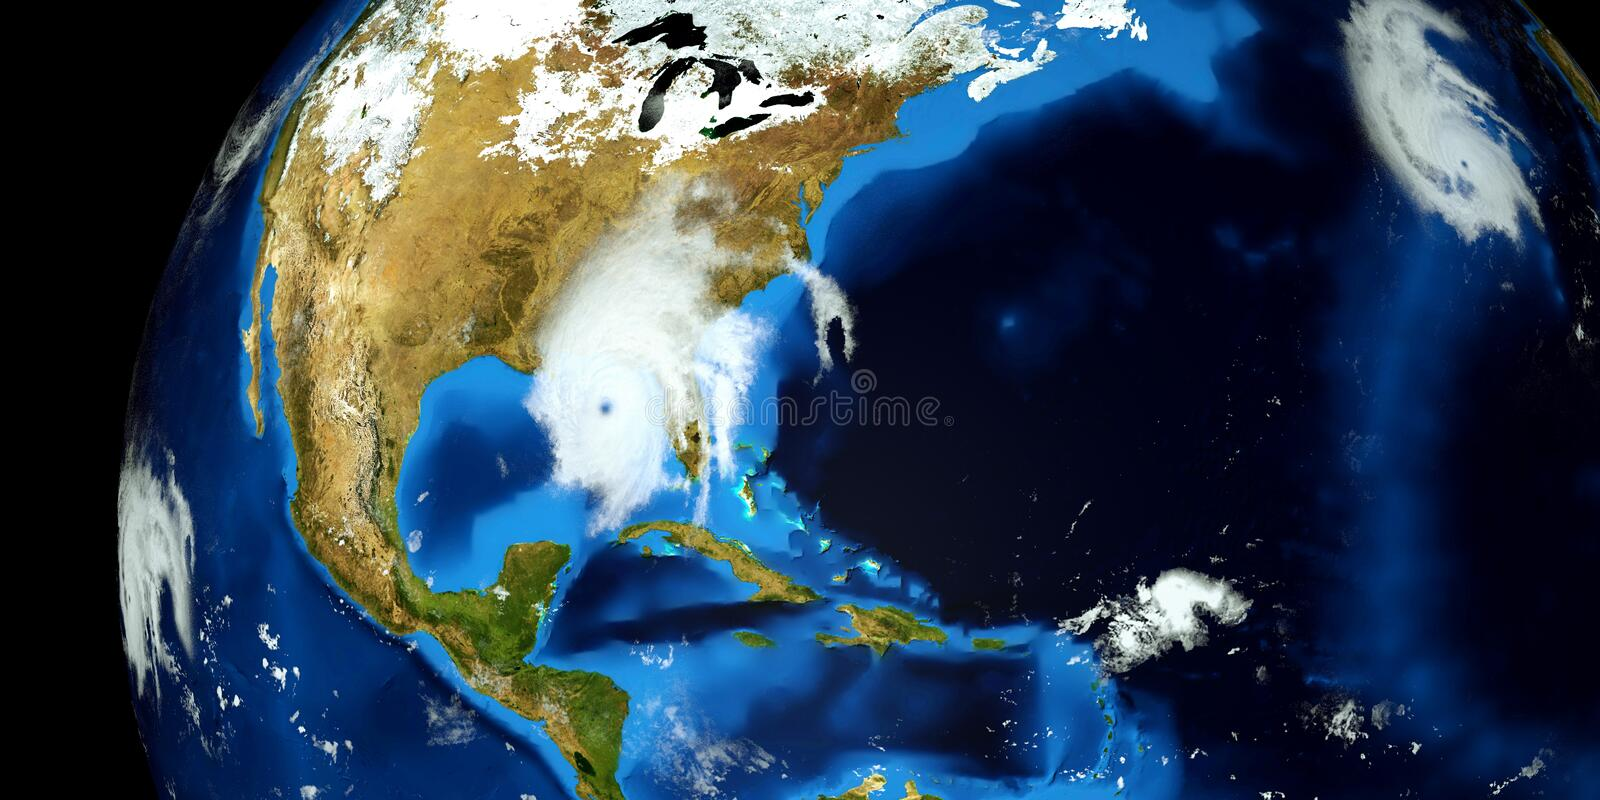 Extremely detailed and realistic high resolution 3D illustration of a Hurricane. Shot from Space. Elements of this image are furni. Extremely detailed and royalty free stock images